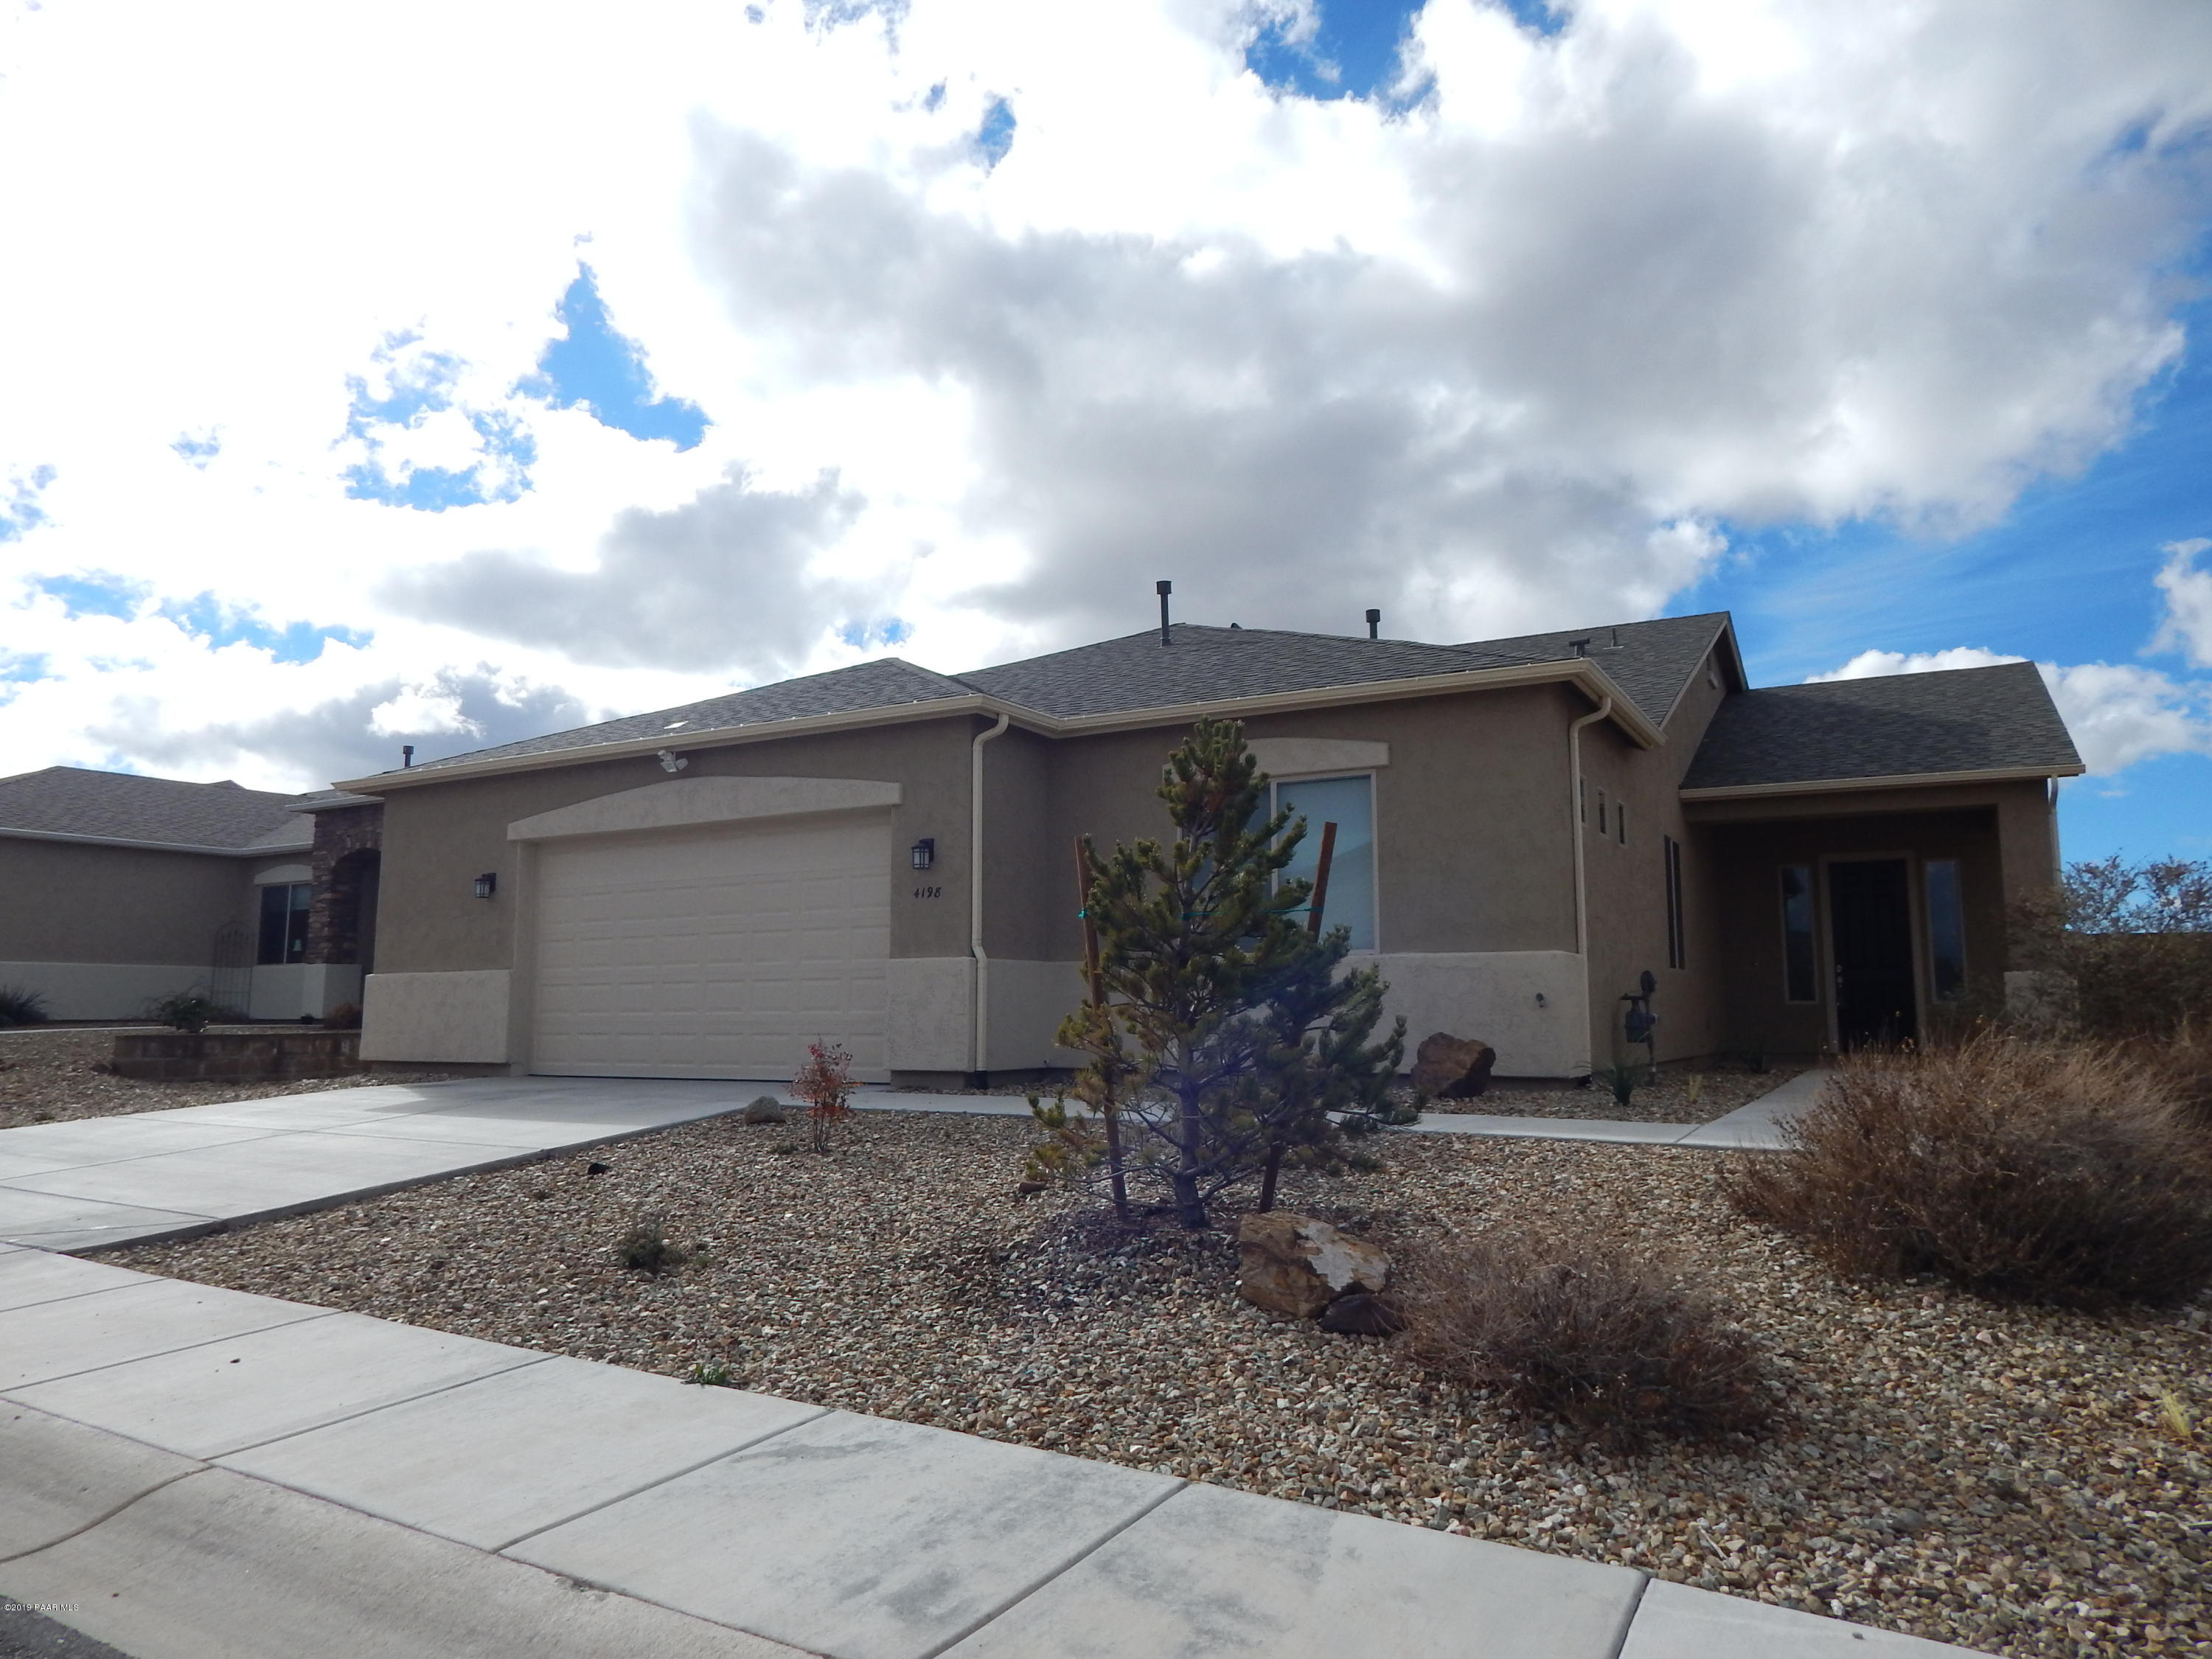 Photo of 4198 Bainsbury, Prescott Valley, AZ 86314